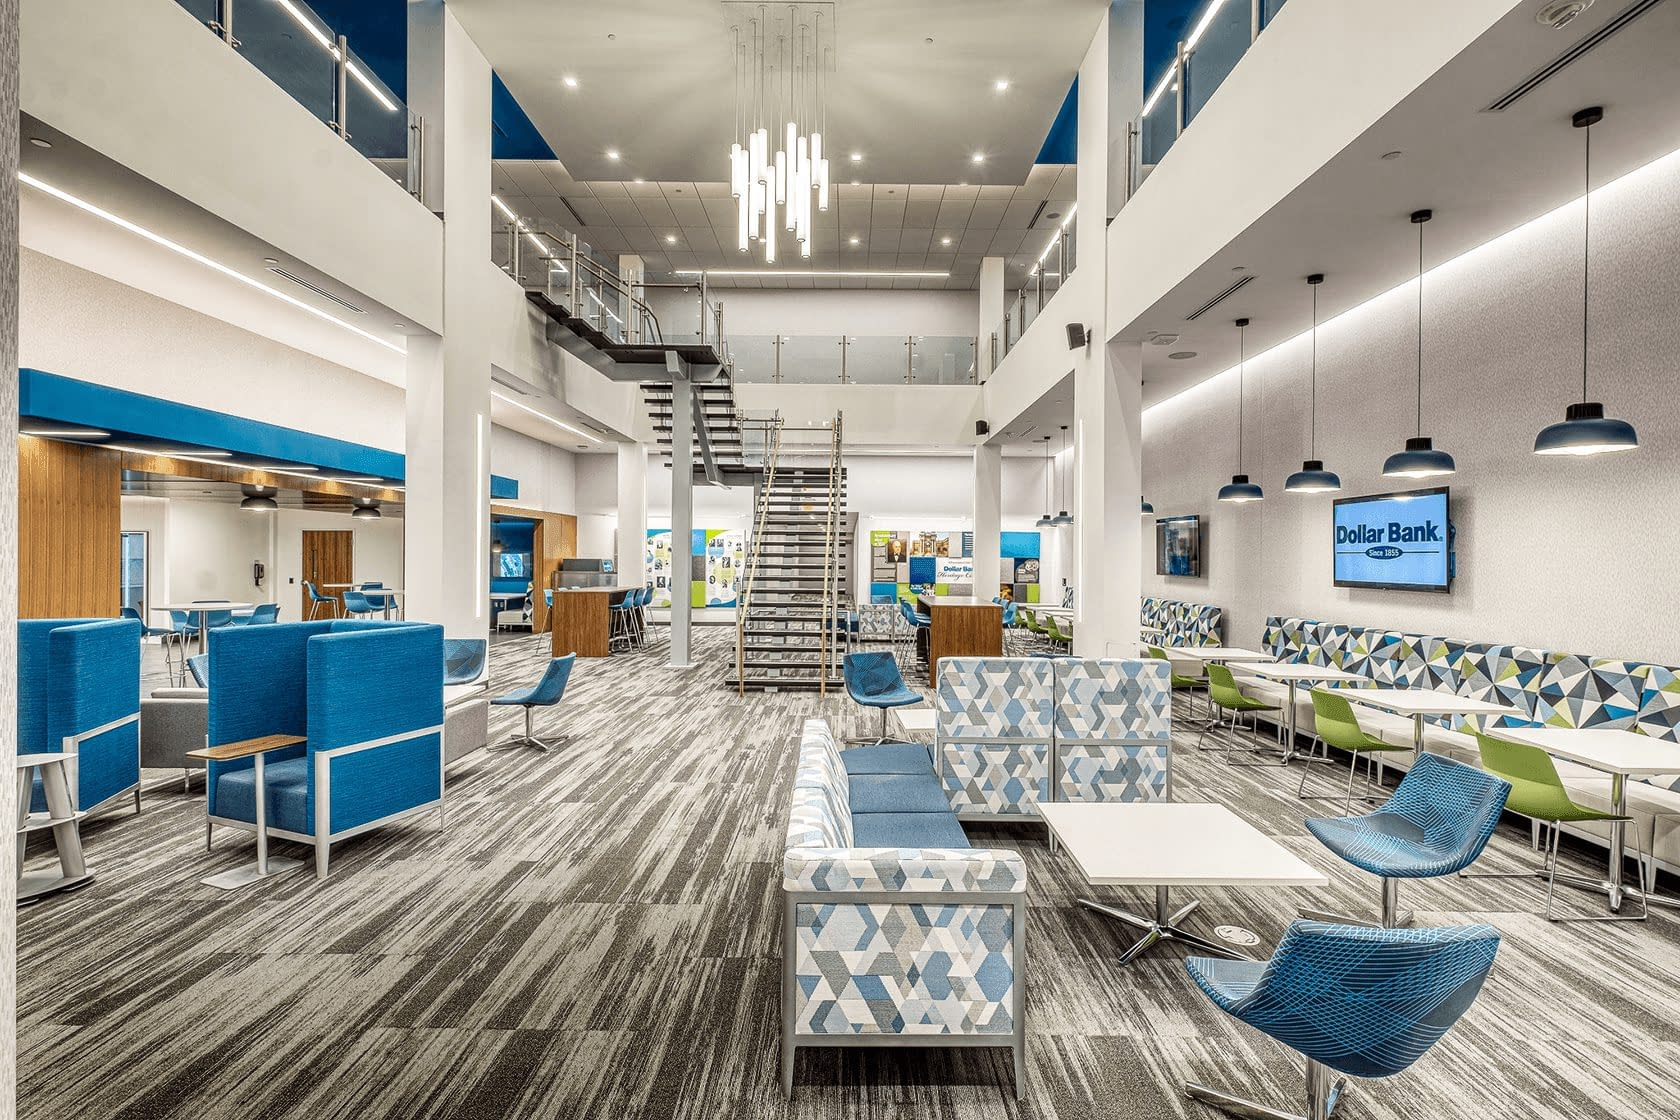 Interior build-out of Dollar bank with blue chairs and gray carpet